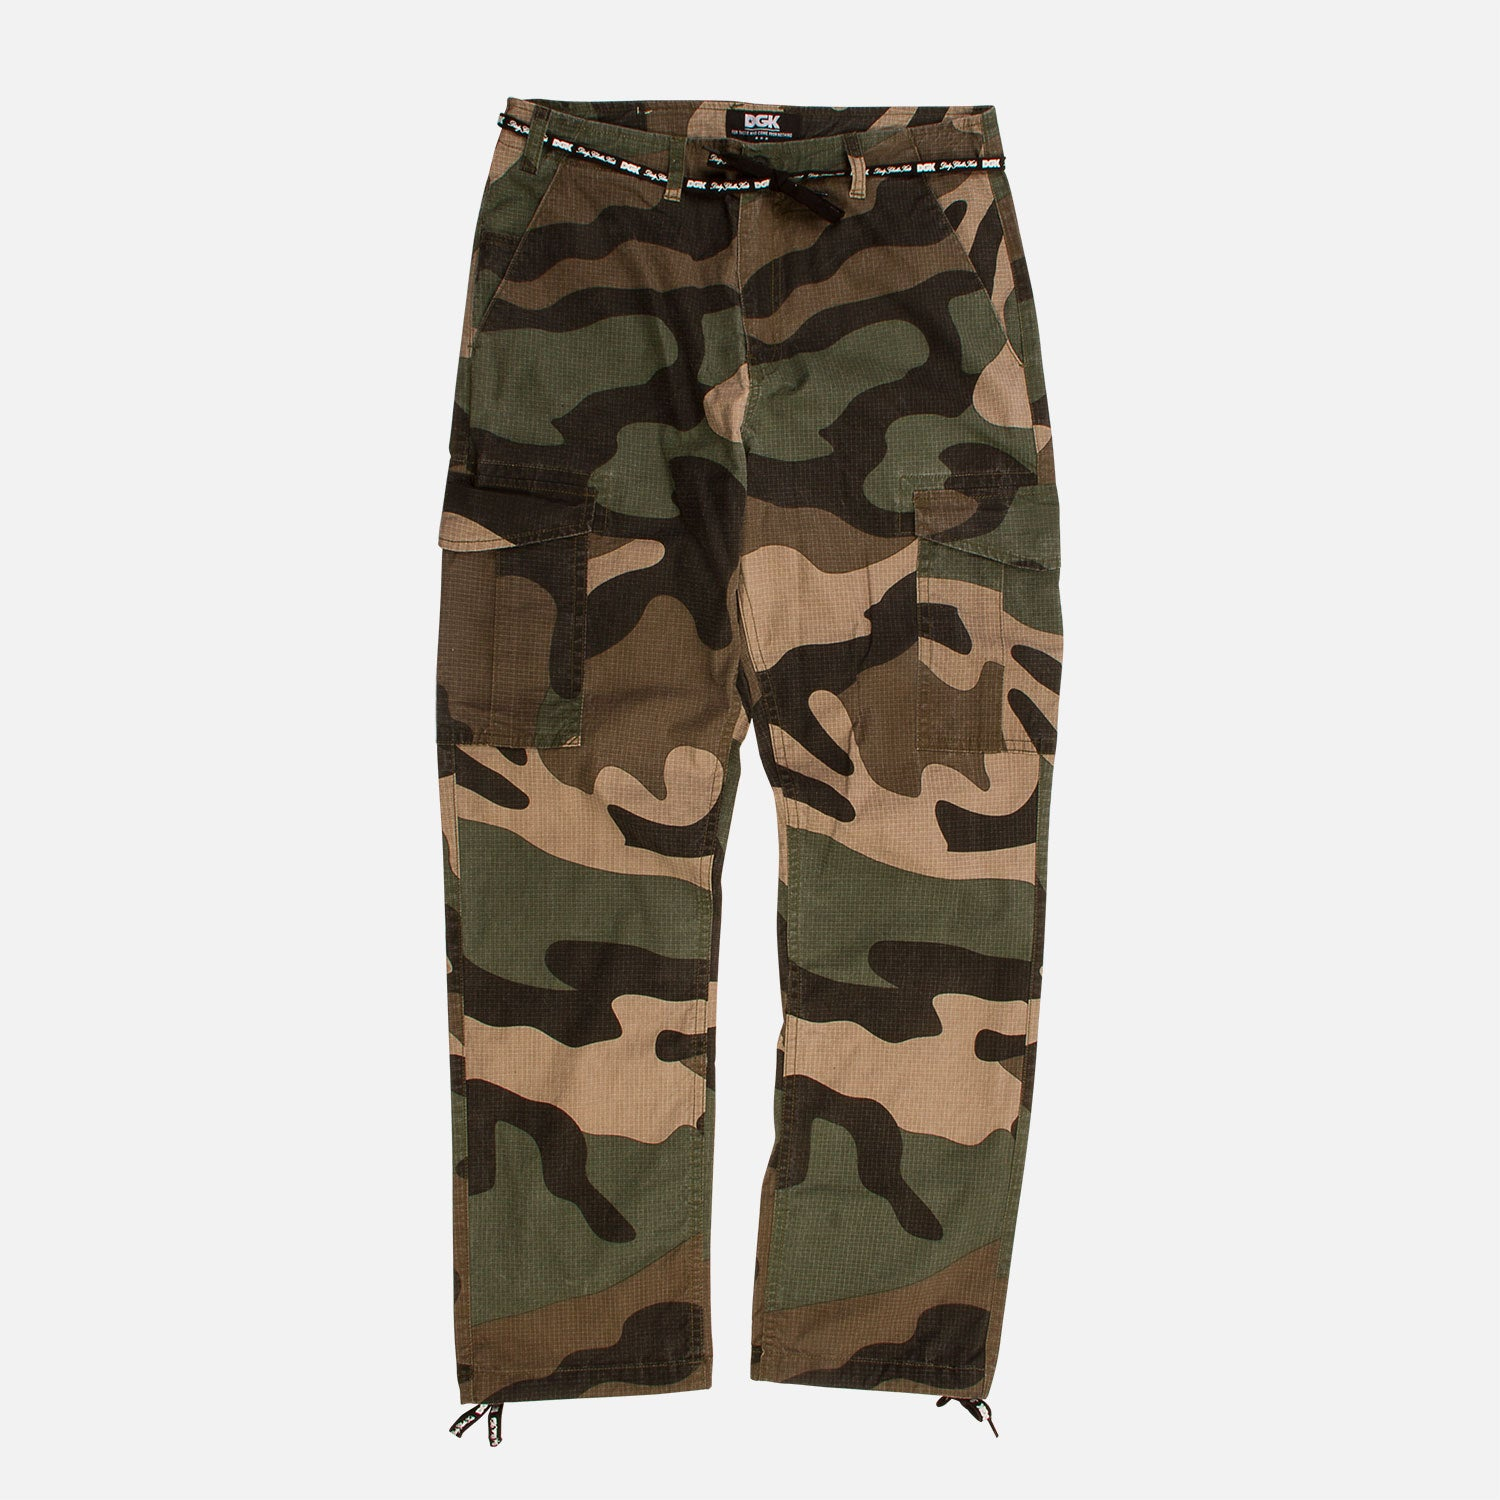 new style & luxury choose original promotion O.G.S Cargo Big Wood Camo Pants